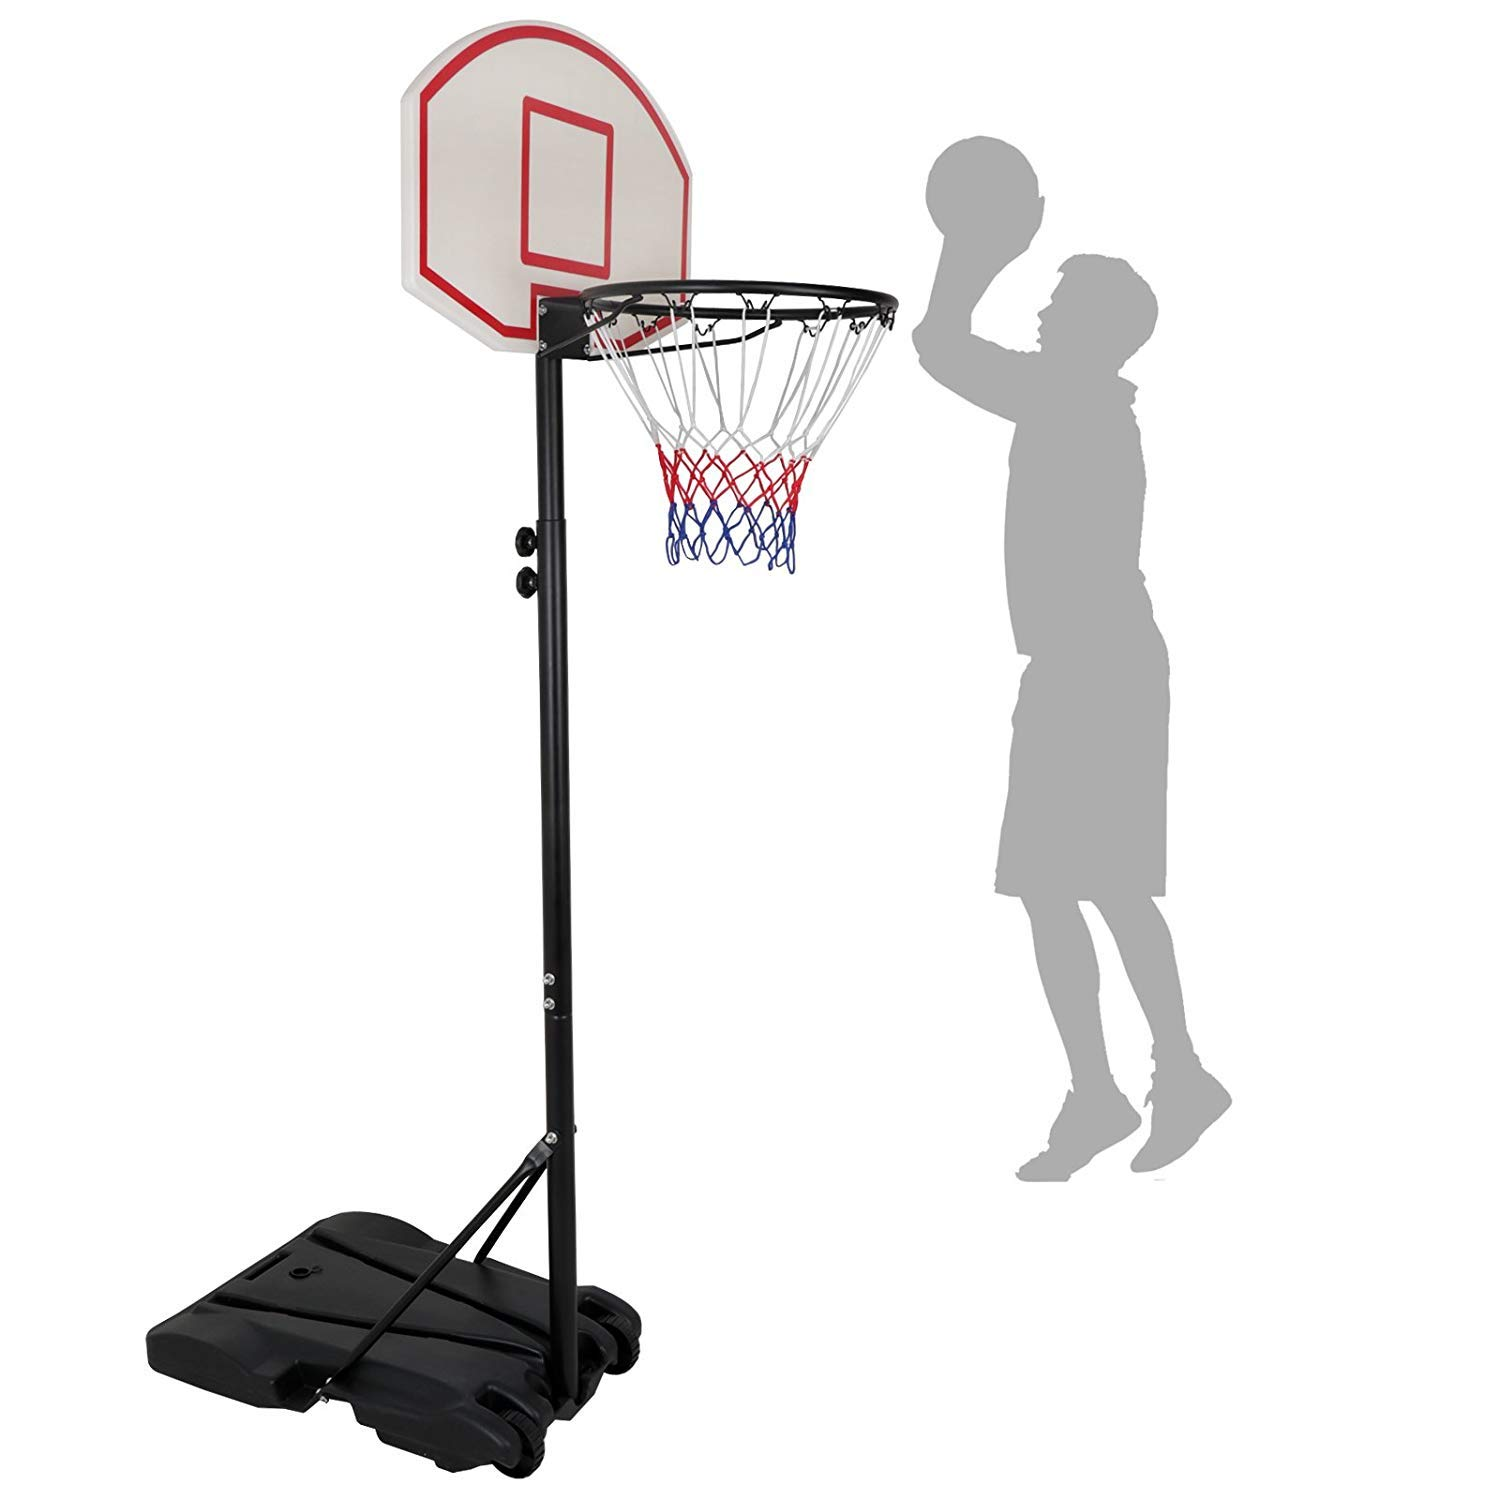 Nova Microdermabrasion Portable Basketball Hoop Stand Backboard System Adjustable-Height W/Wheels 5+ Years Kids Goal Indoor Outdoor 6.9ft